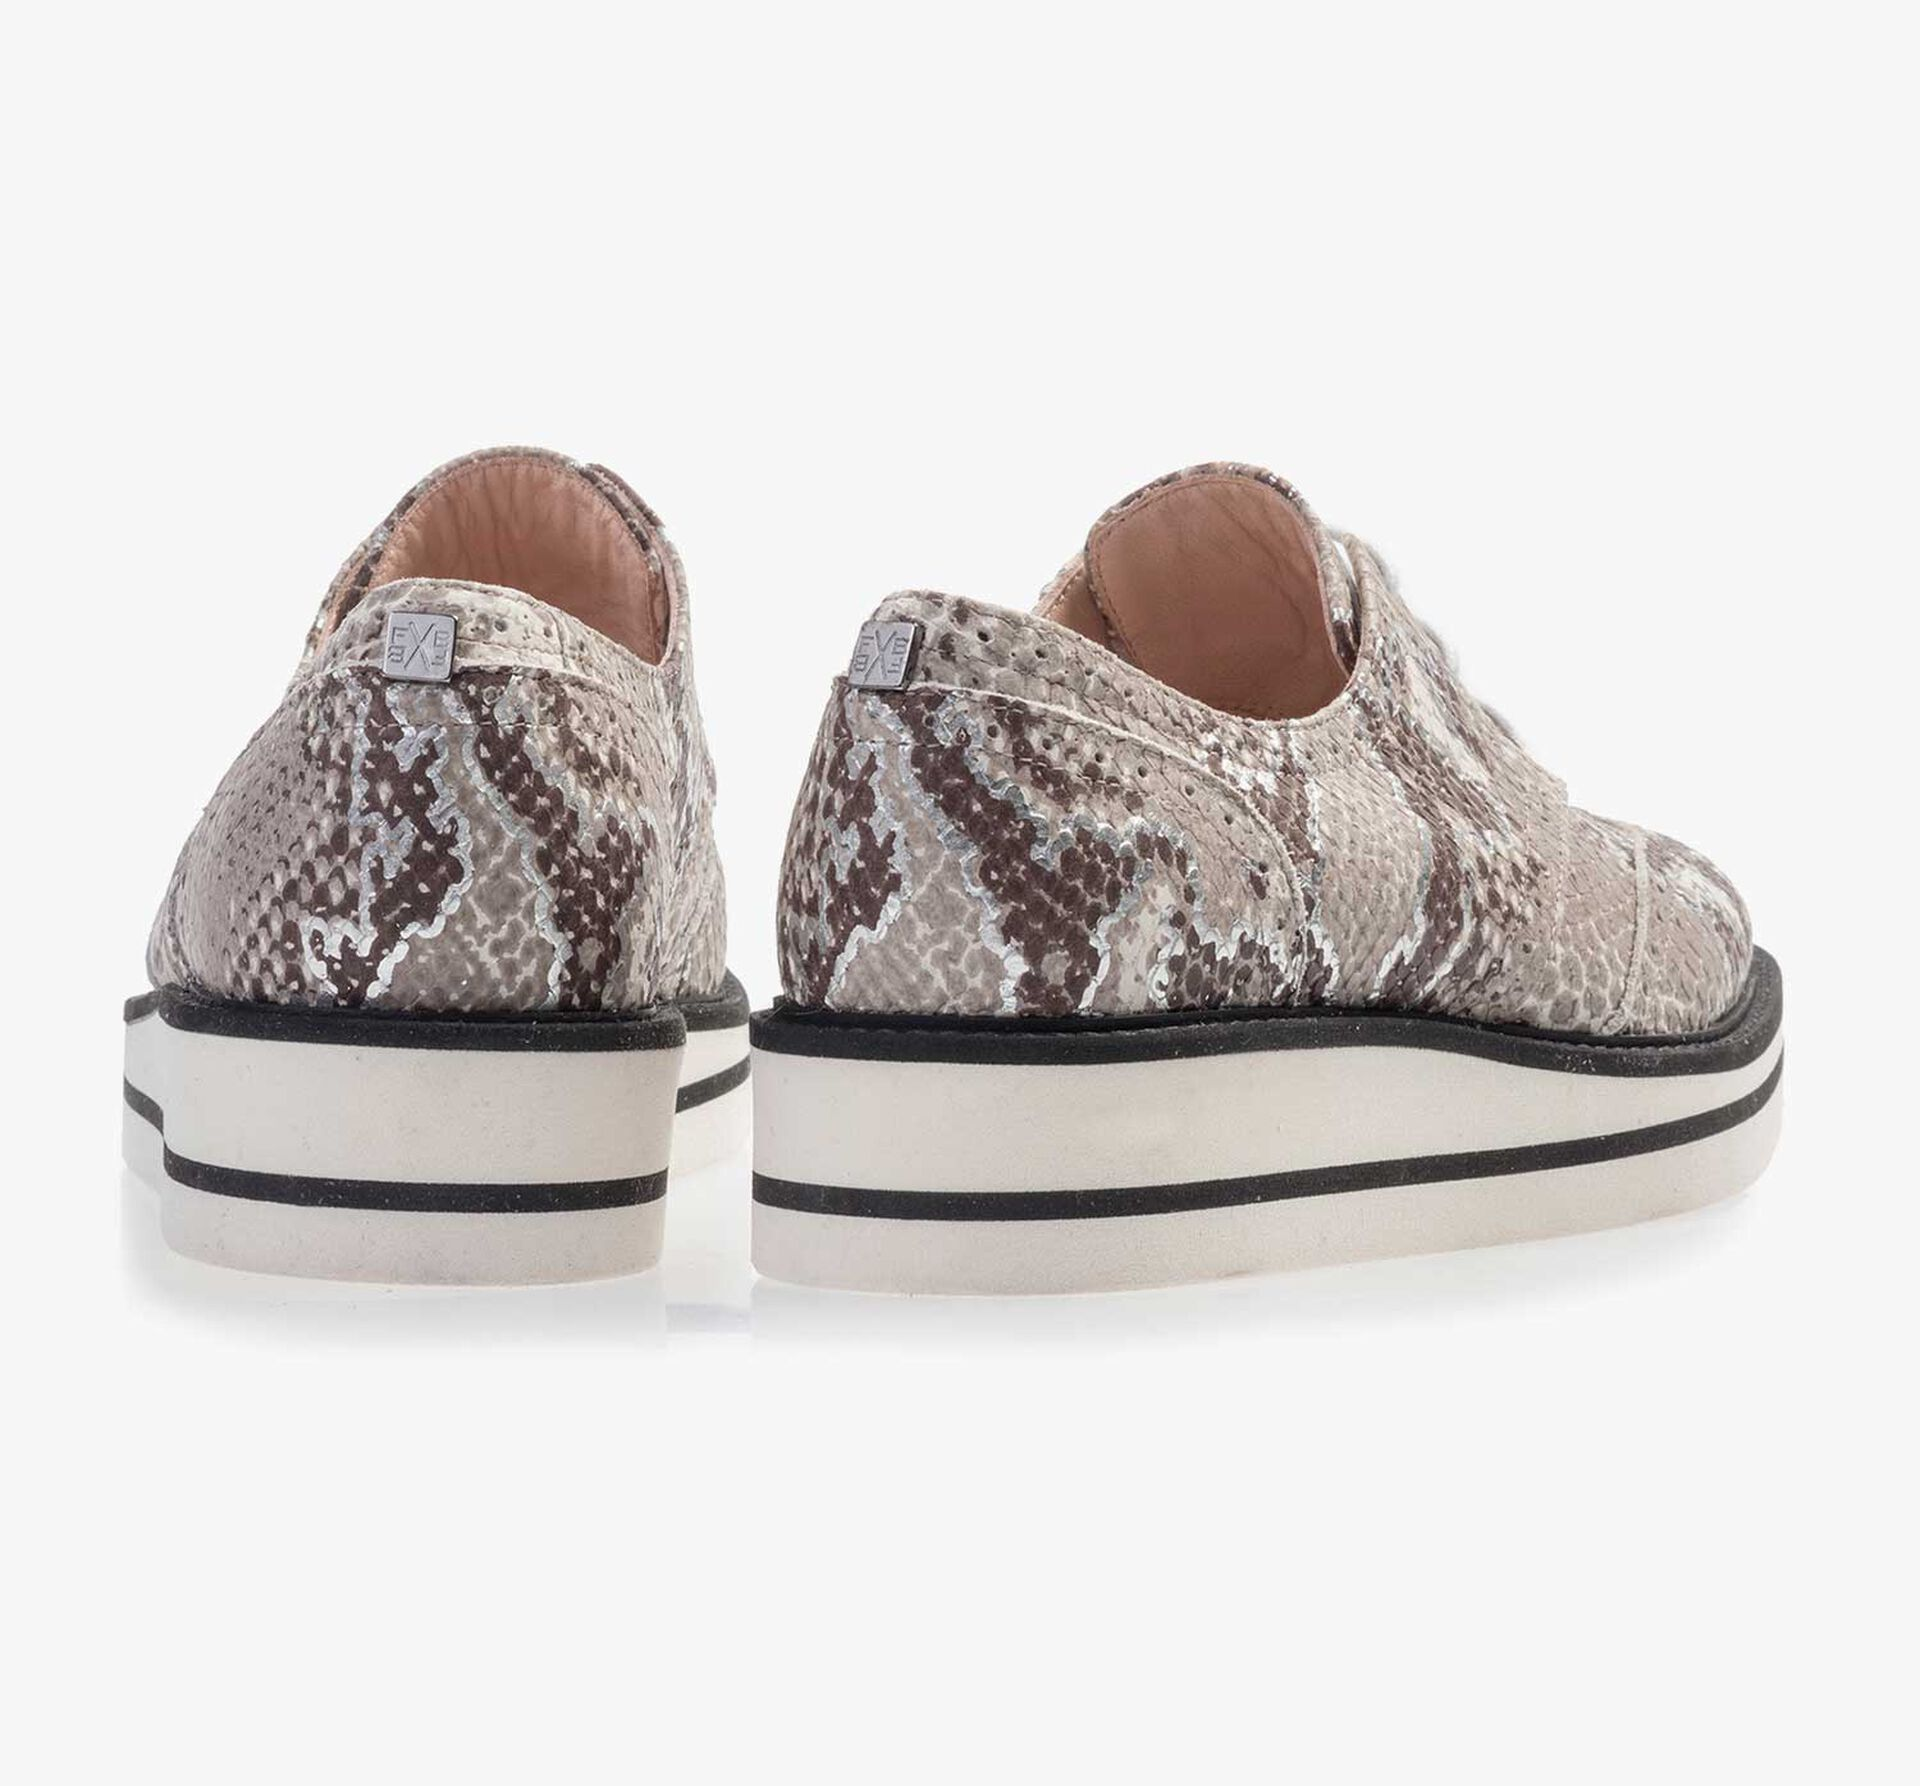 Taupe-coloured brogue leather lace shoe with snake print